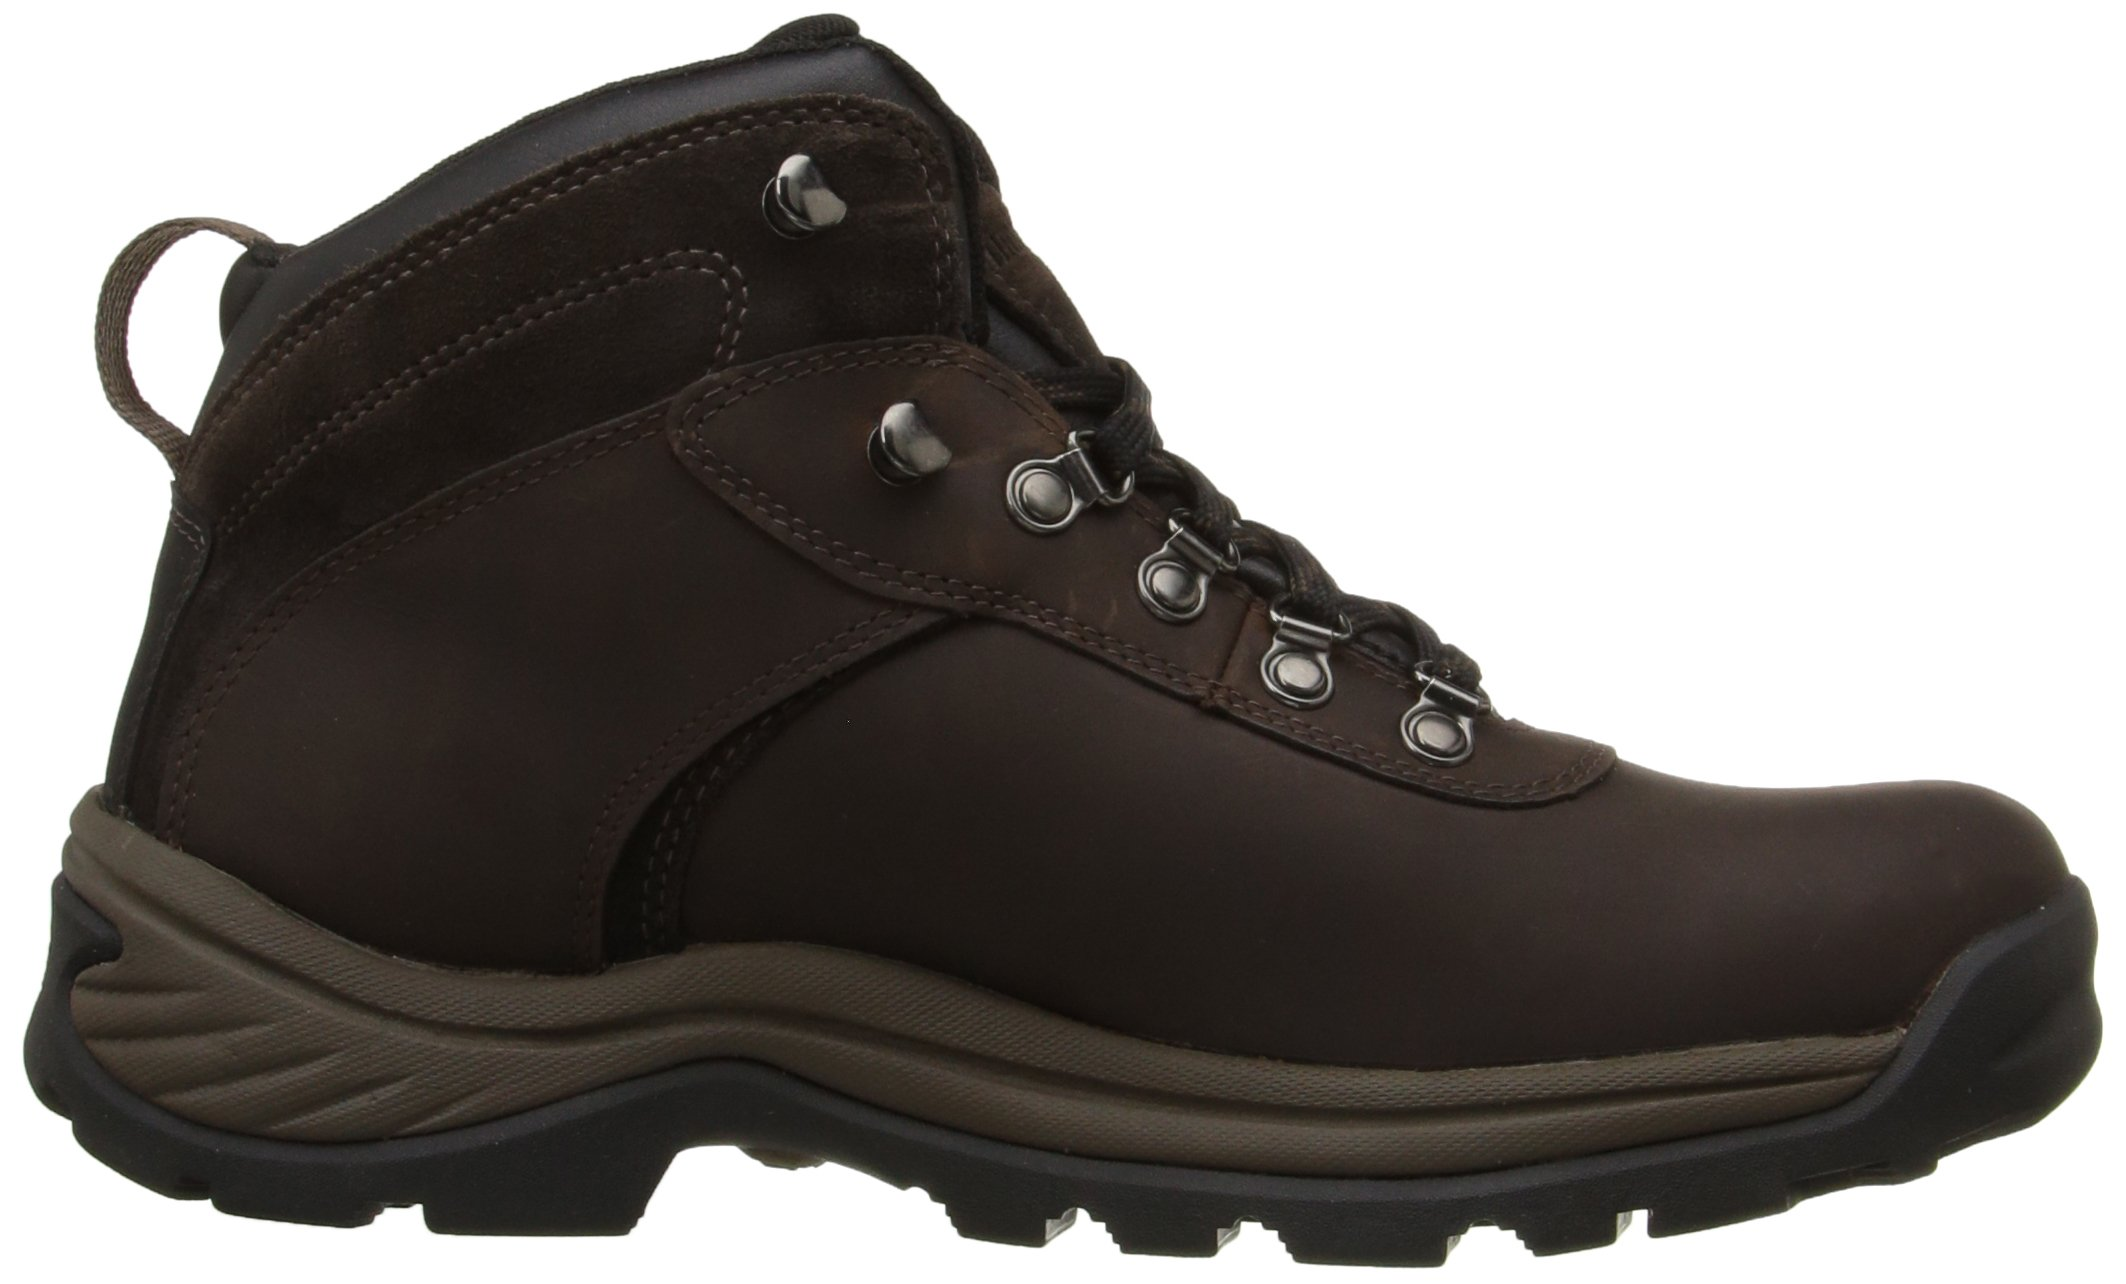 Timberland Men's Flume Waterproof Boot,Dark Brown,13 M US by Timberland (Image #7)